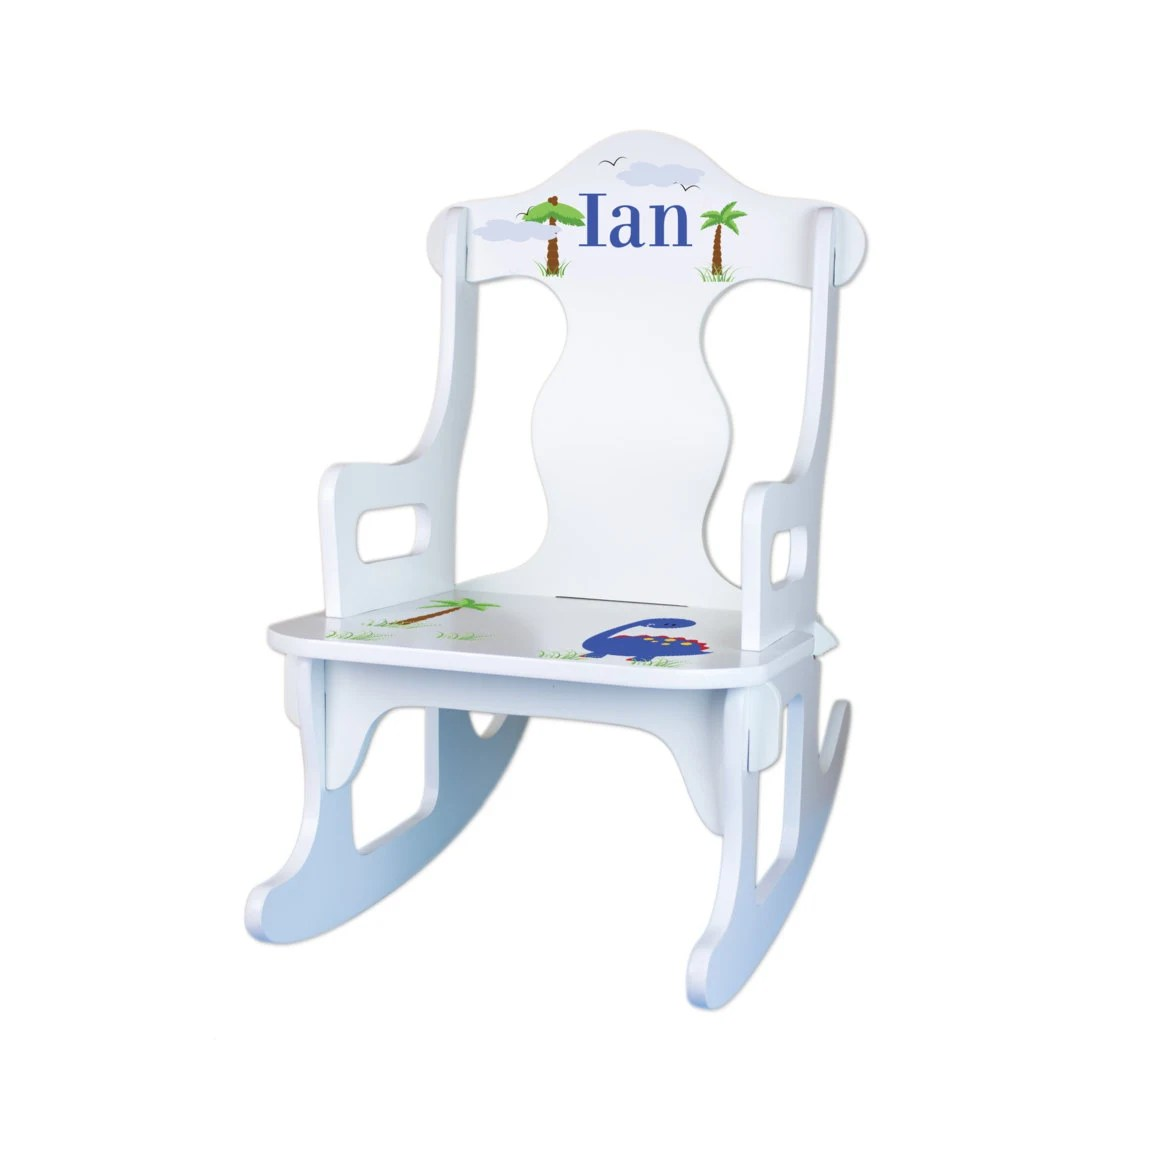 personalized rocking chair for toddlers wheelchair motor kids custom white by wizkickgifts